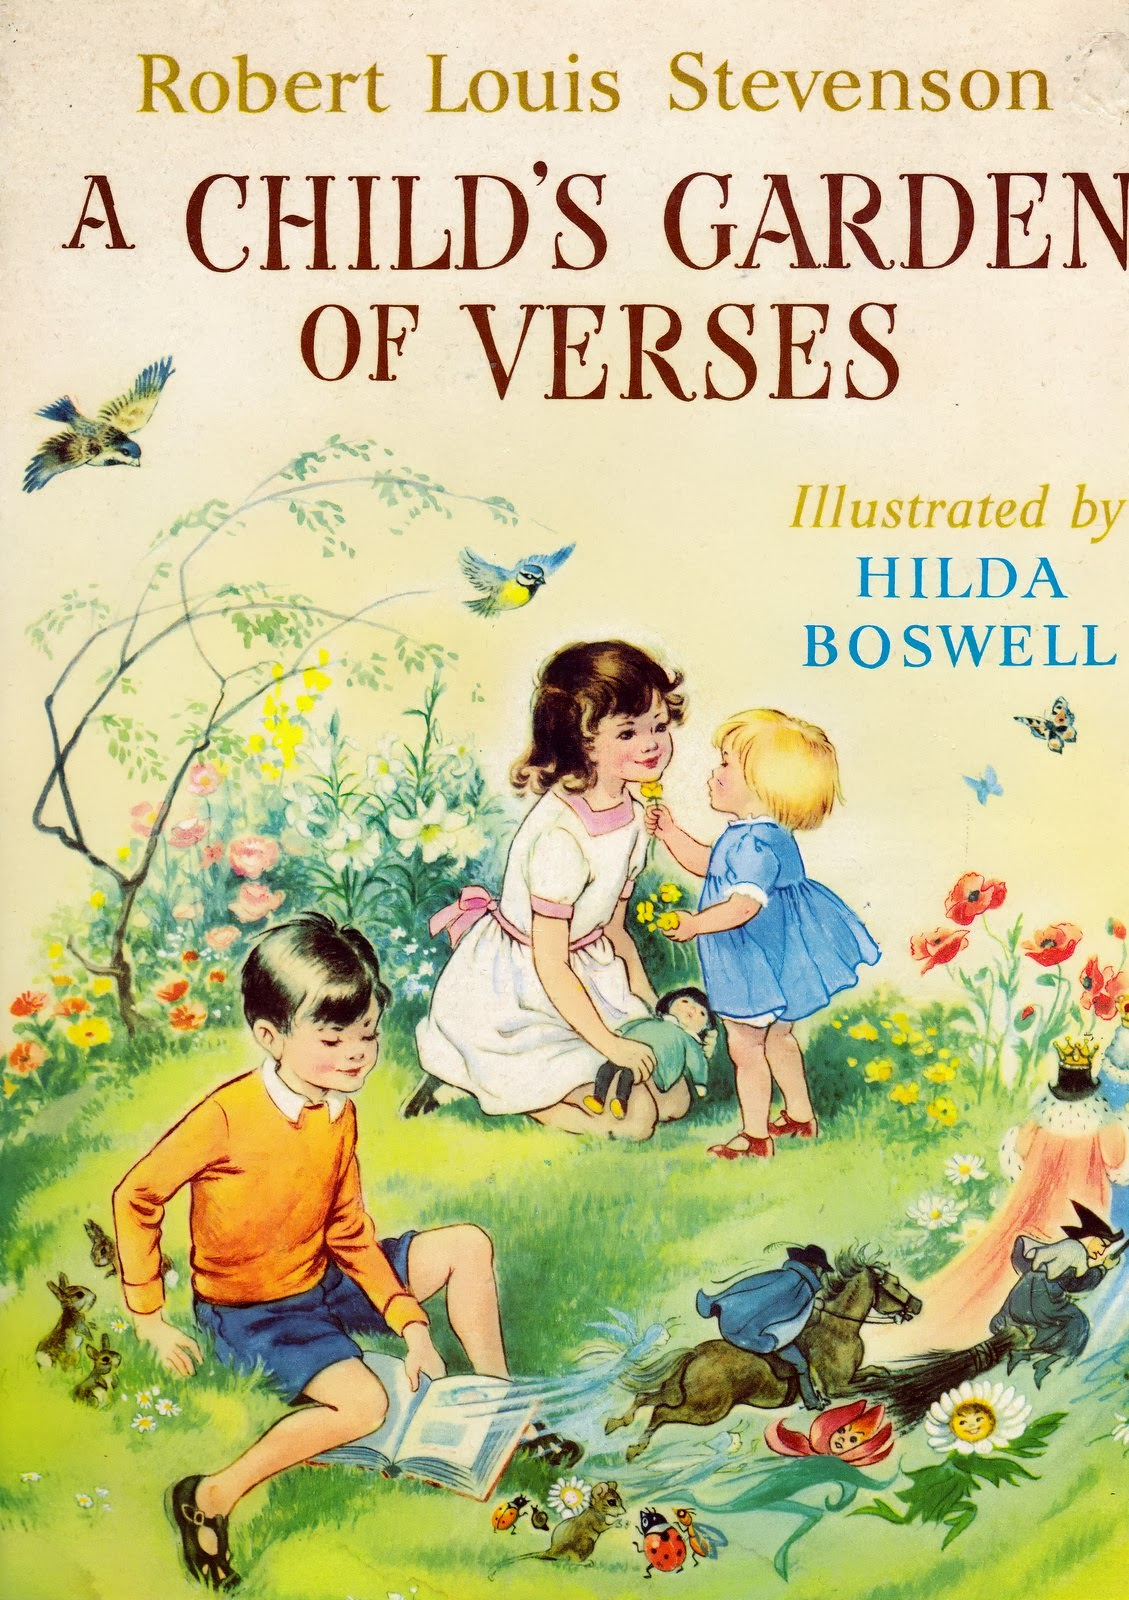 Vintage Books For The Very Young A Child 39 S Garden Of Verses Illustrated By Hilda Boswell